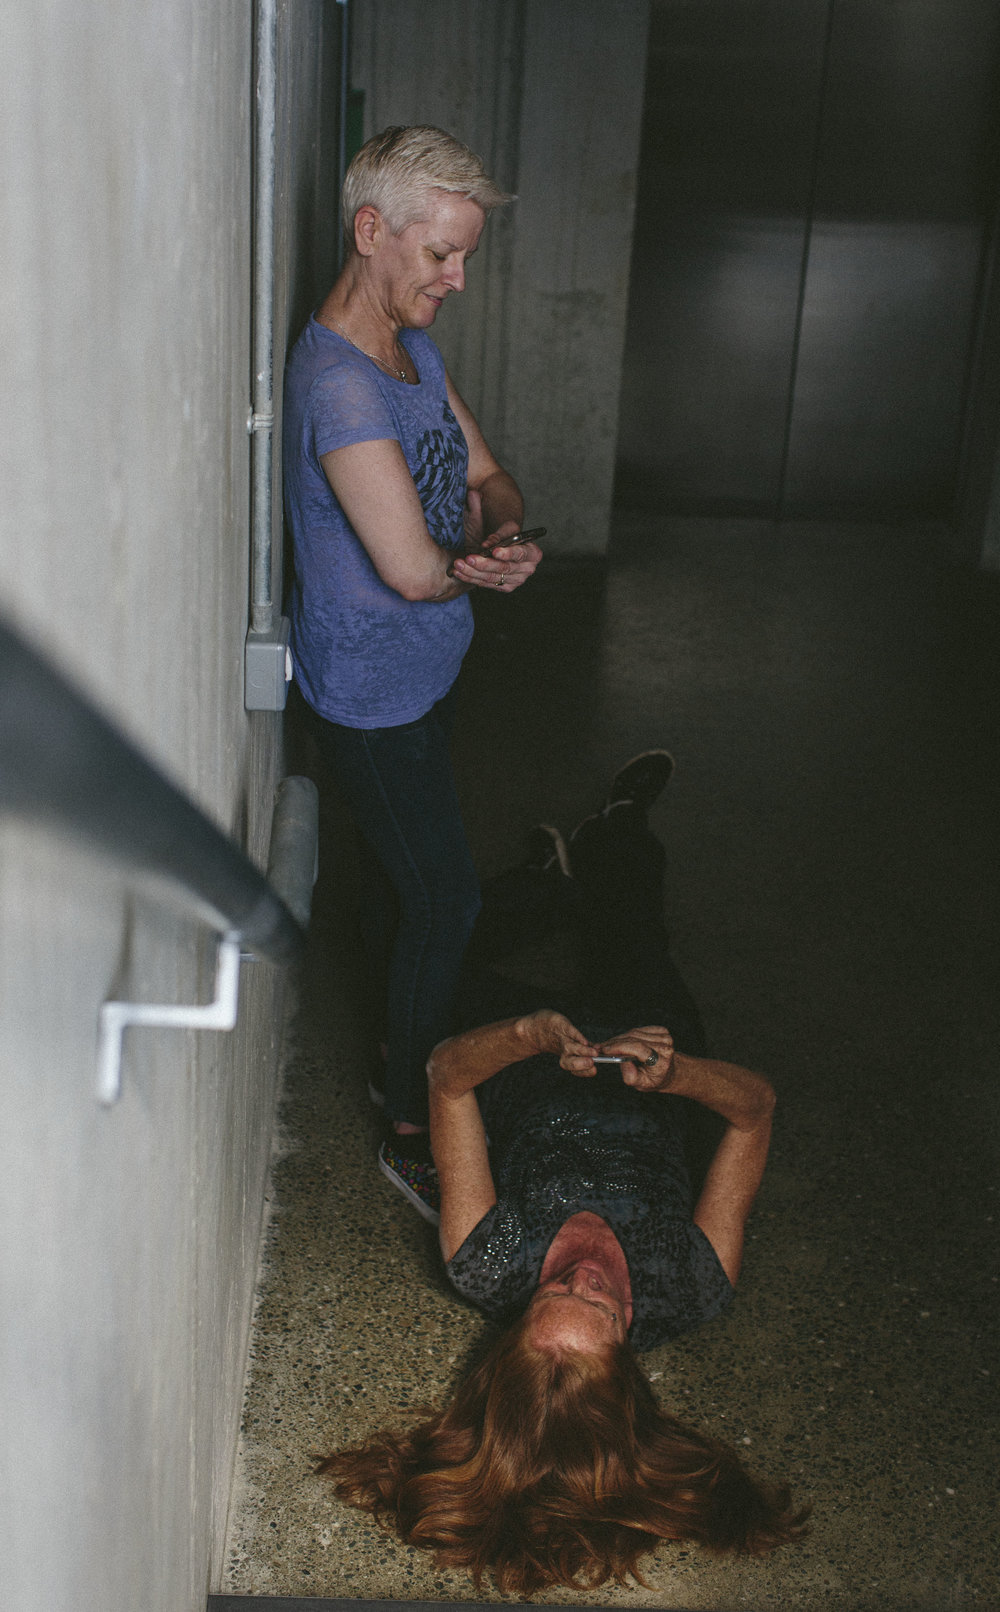 Tara Brandel lies on ground and Linda Fearon stands leaning against a wall (photo: Emma Jervis)